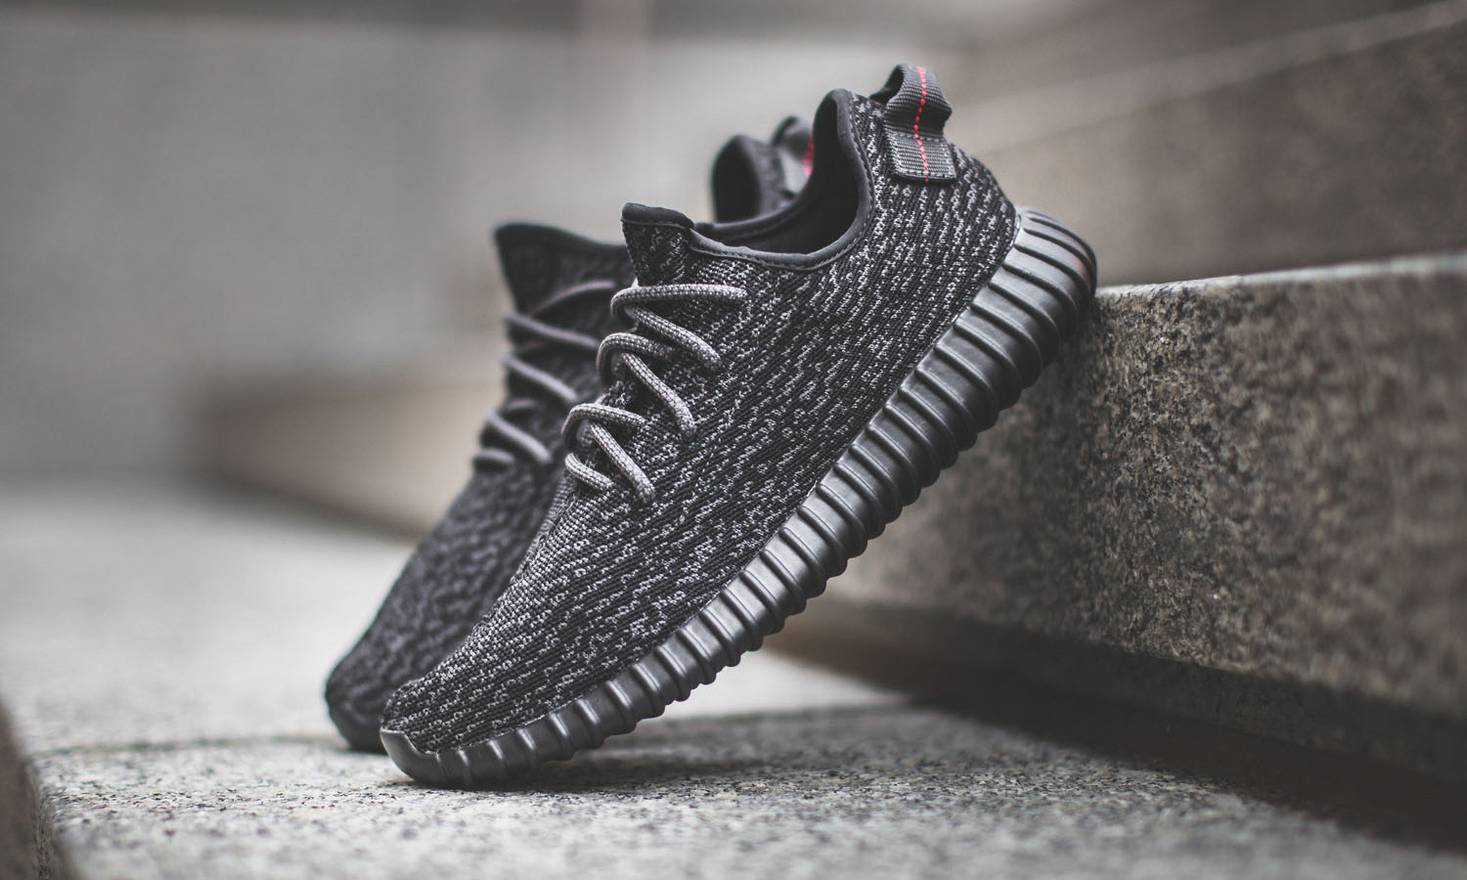 6b9cdcb196dc0 ... discount adidas yeezy boost 350 pirate black size us 8 eu 41 716bc 88596